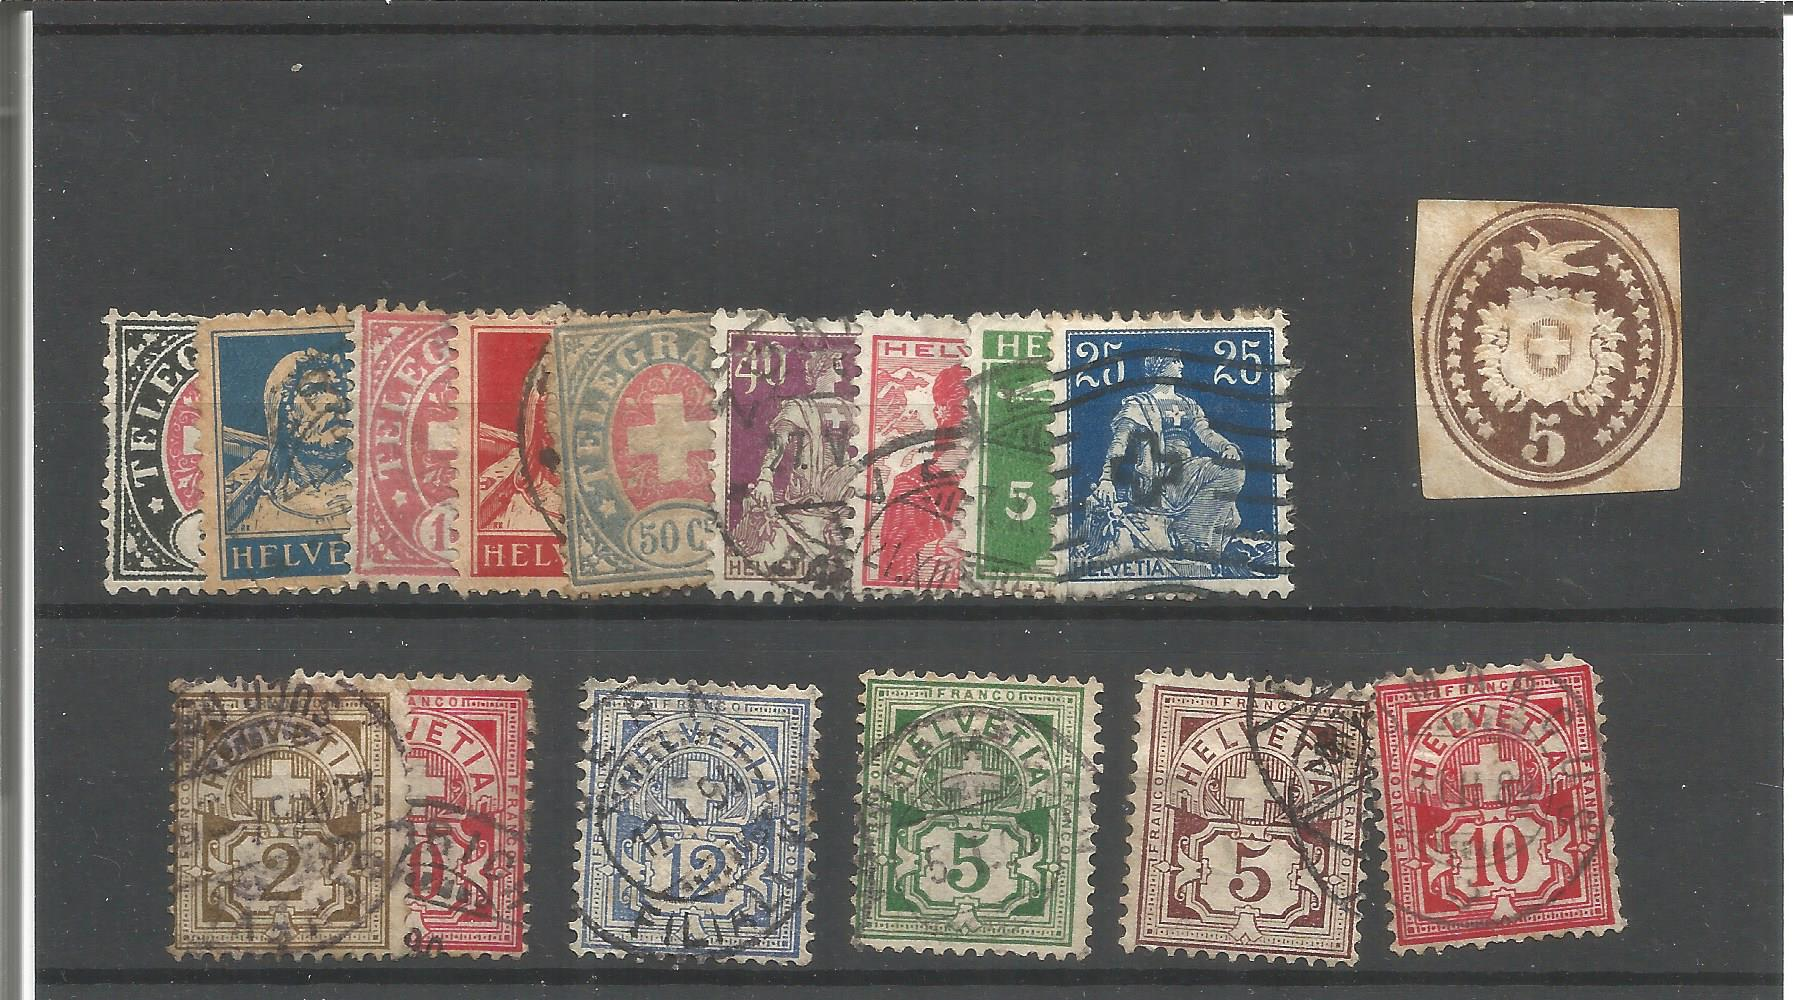 16 Swiss stamps on stockcard. Good condition. We combine postage on multiple winning lots and can